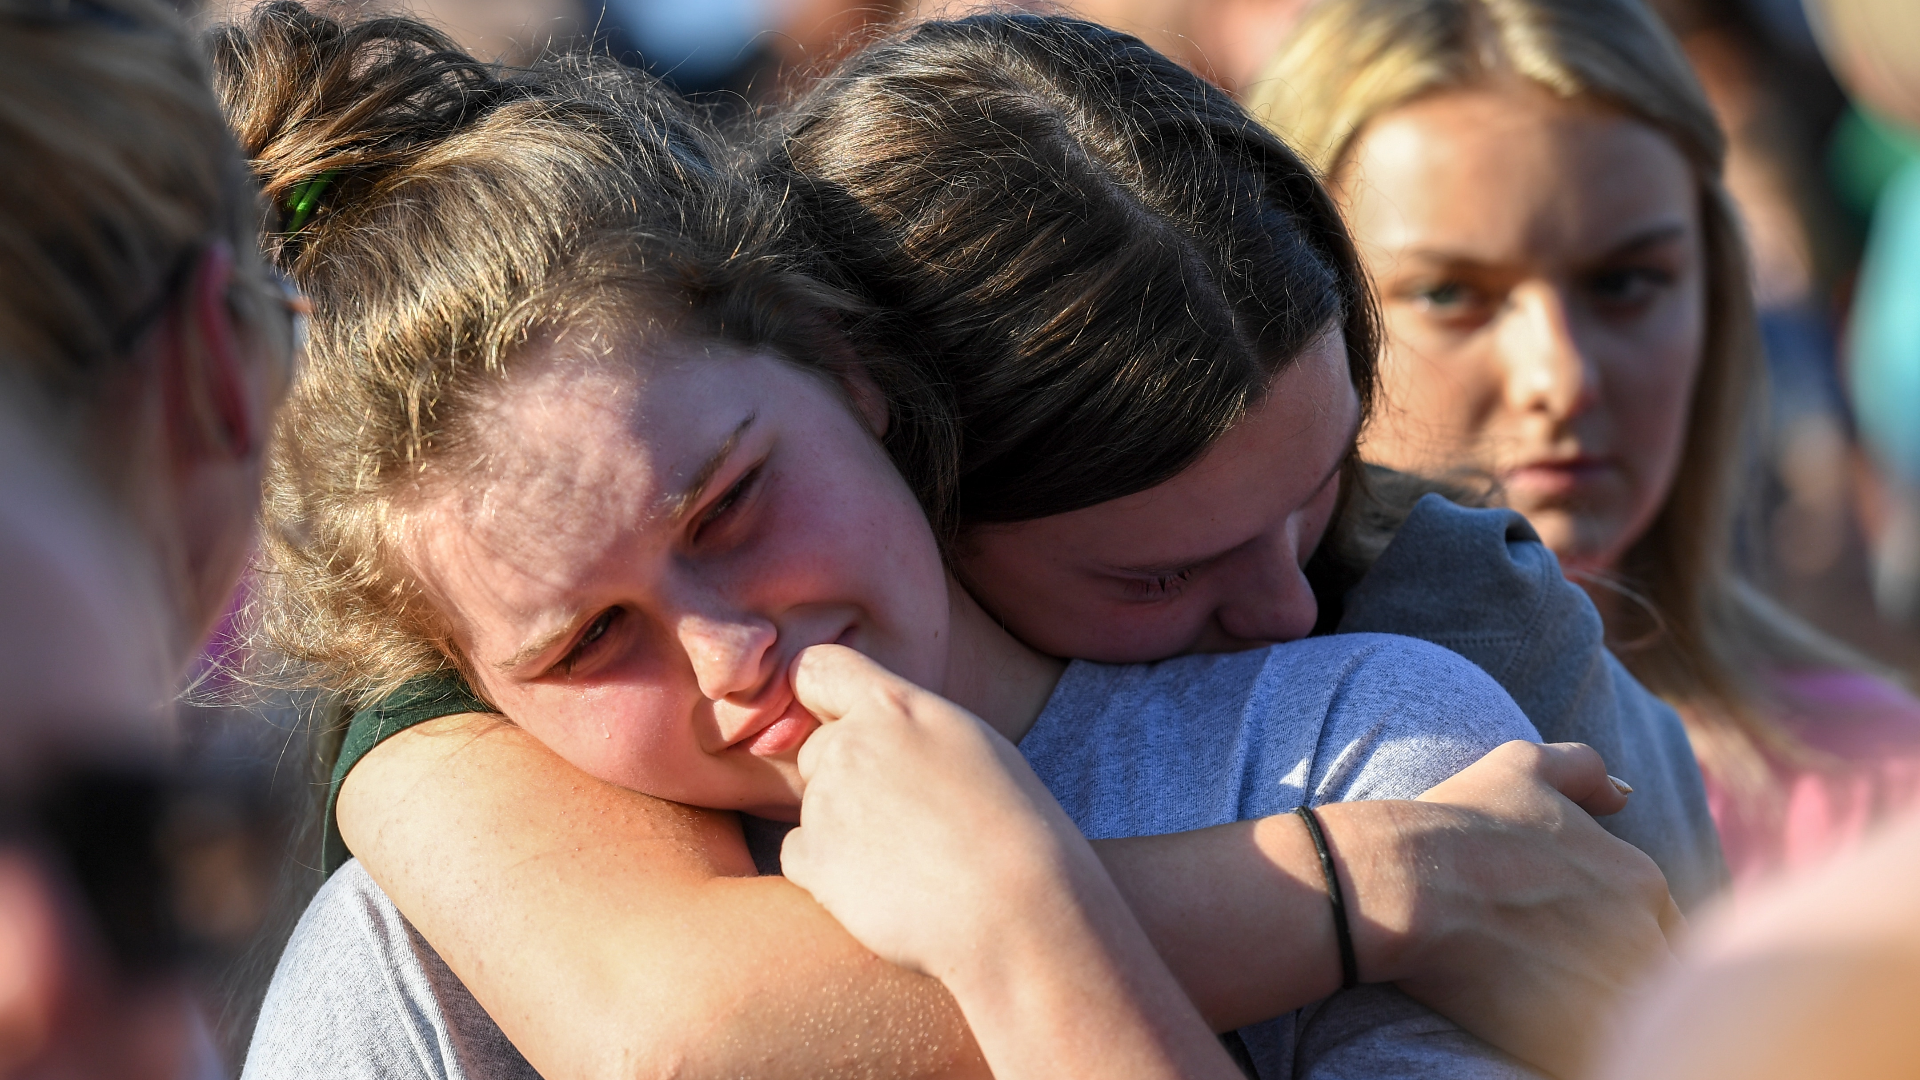 'Overwhelming grief': 8 students, 2 teachers killed in Texas high school shooting